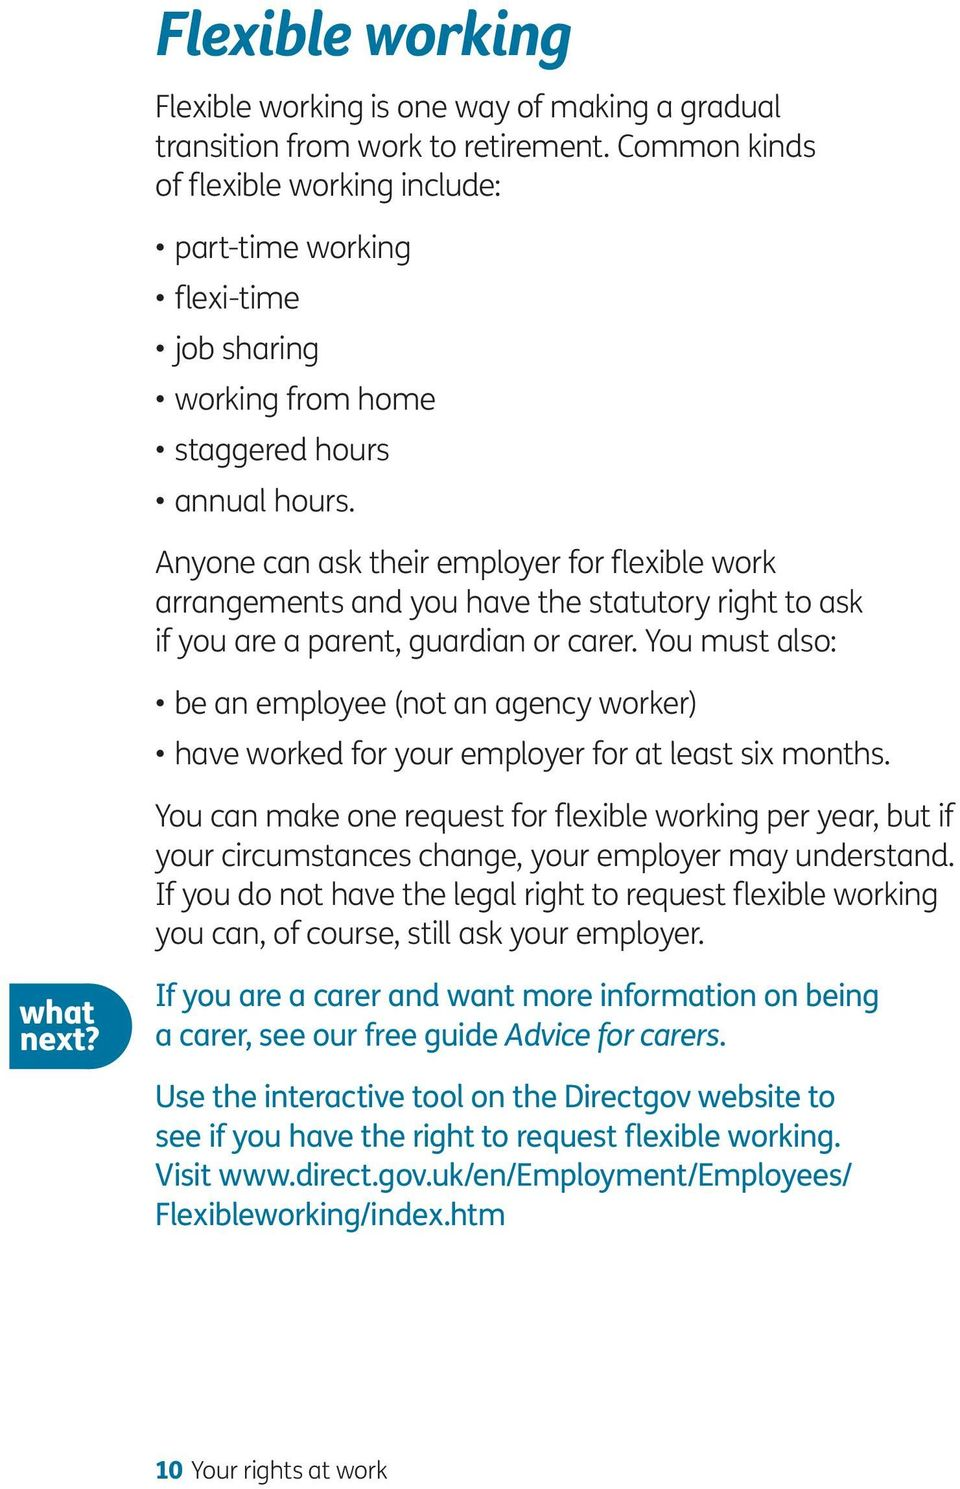 Anyone can ask their employer for flexible work arrangements and you have the statutory right to ask if you are a parent, guardian or carer.